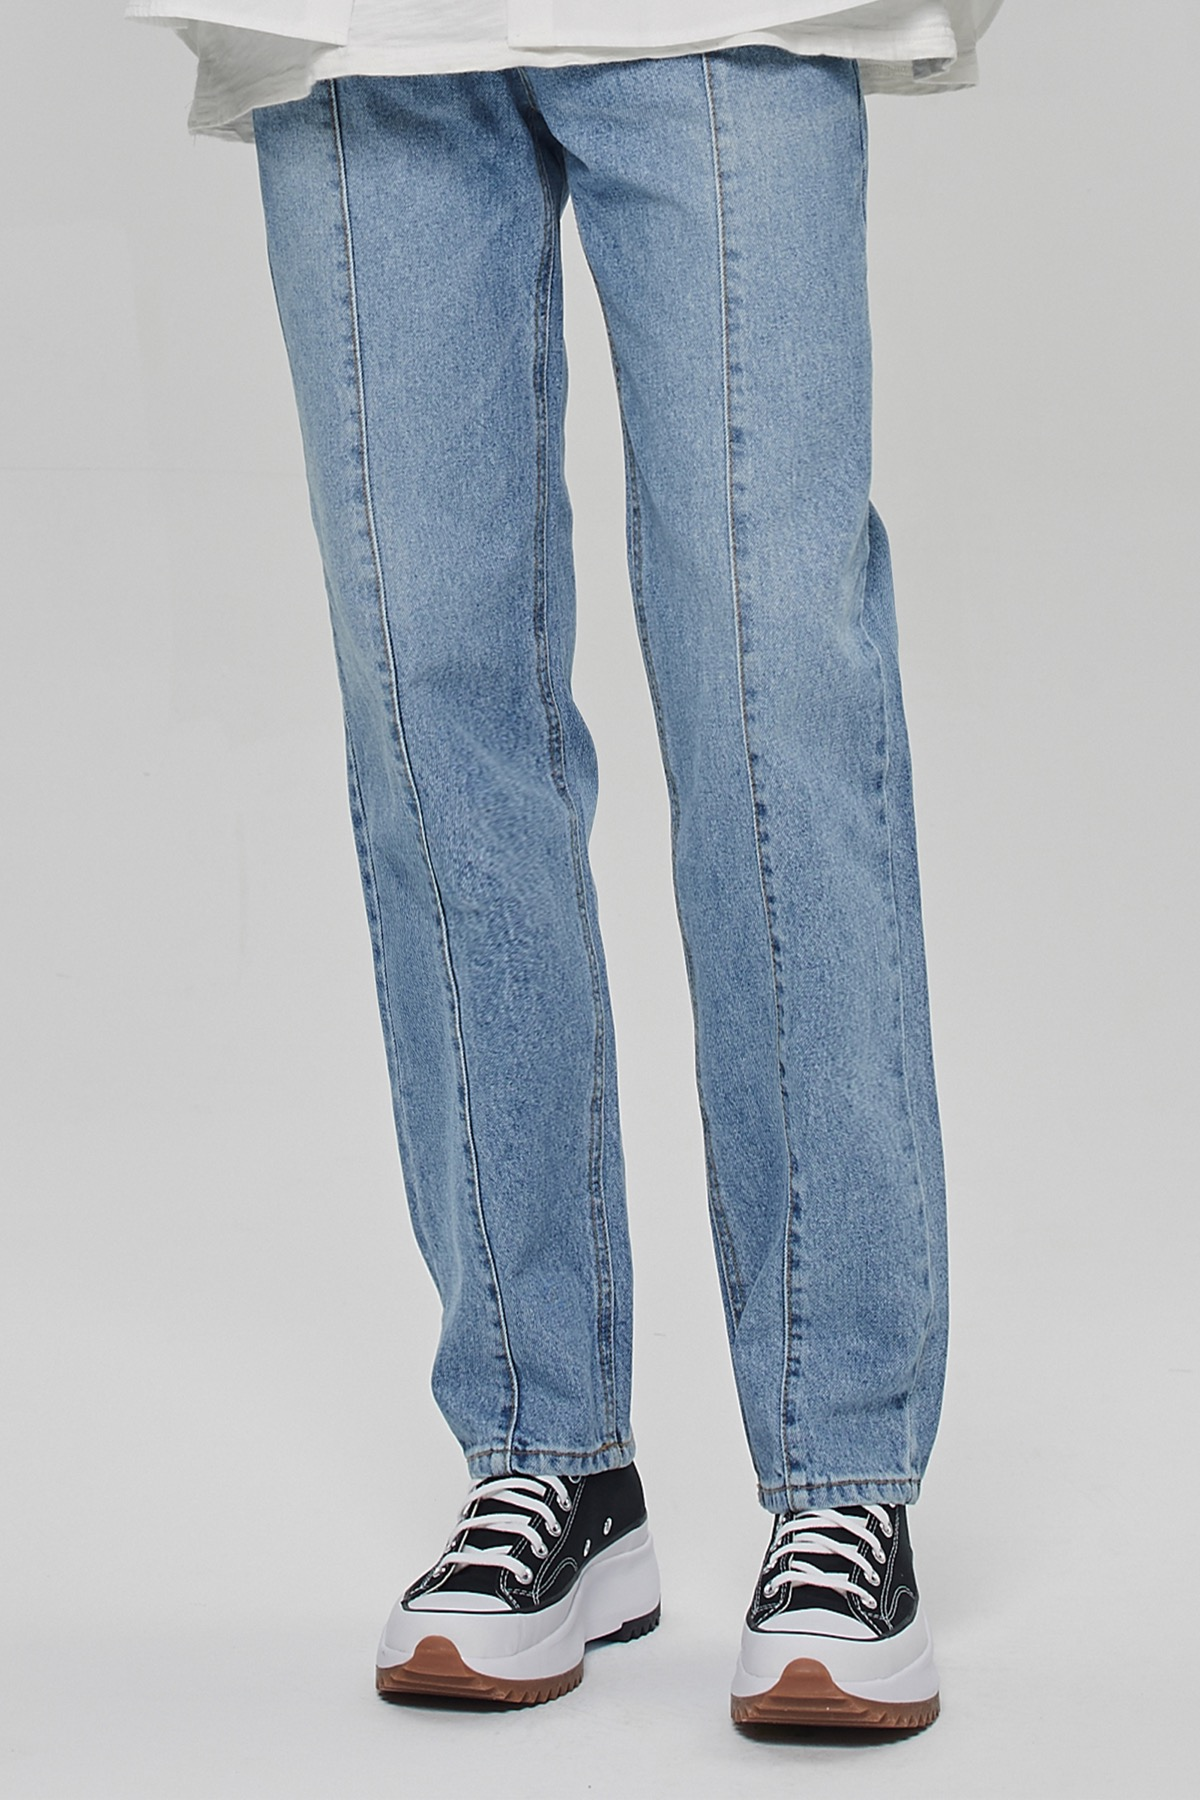 LIGHTE BLUE VERTICAL REGULAR STRAIGHT JEANS